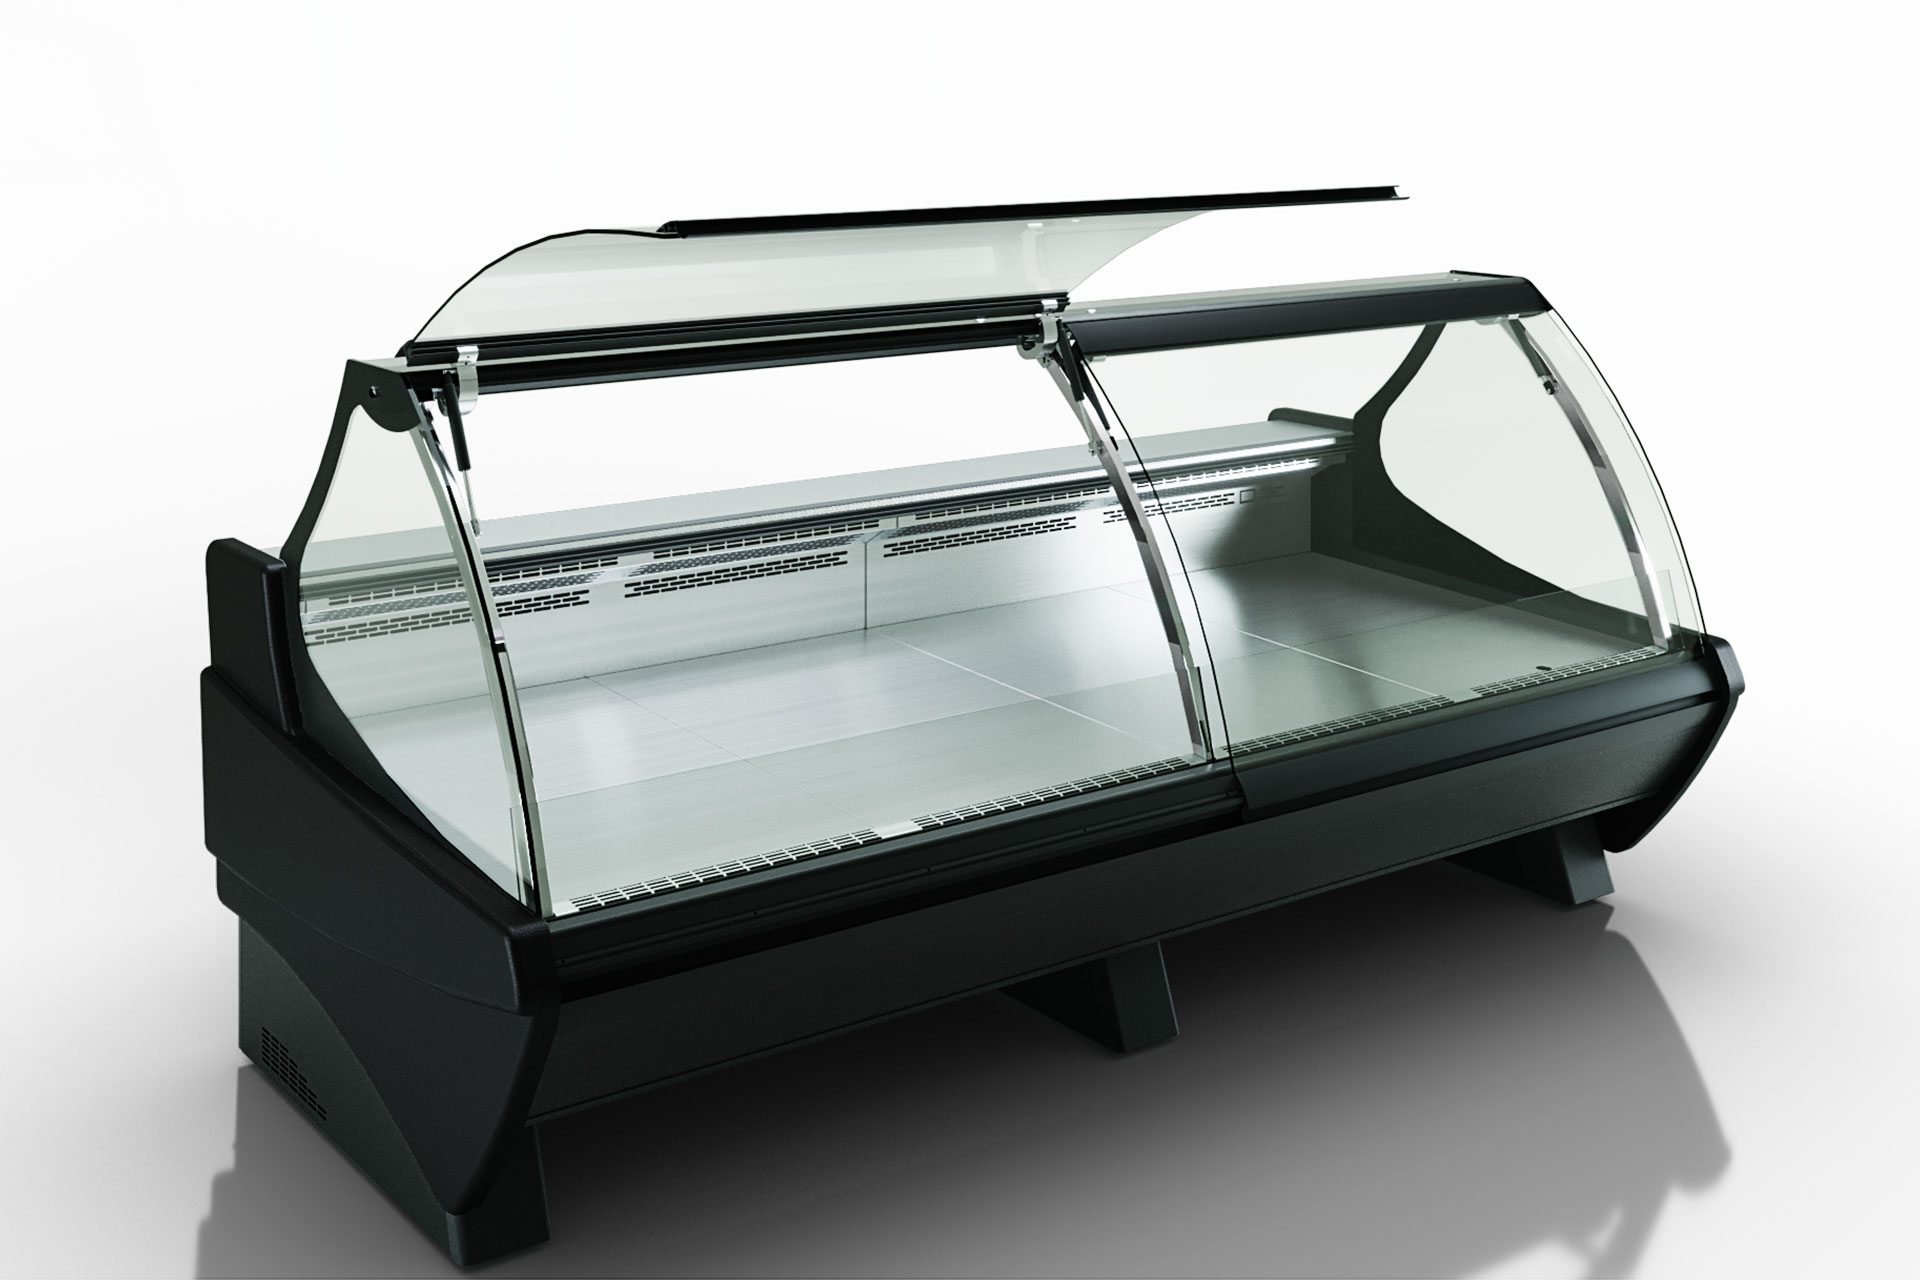 Counter Symphony luxe MG 120 deli PS 125-DLM